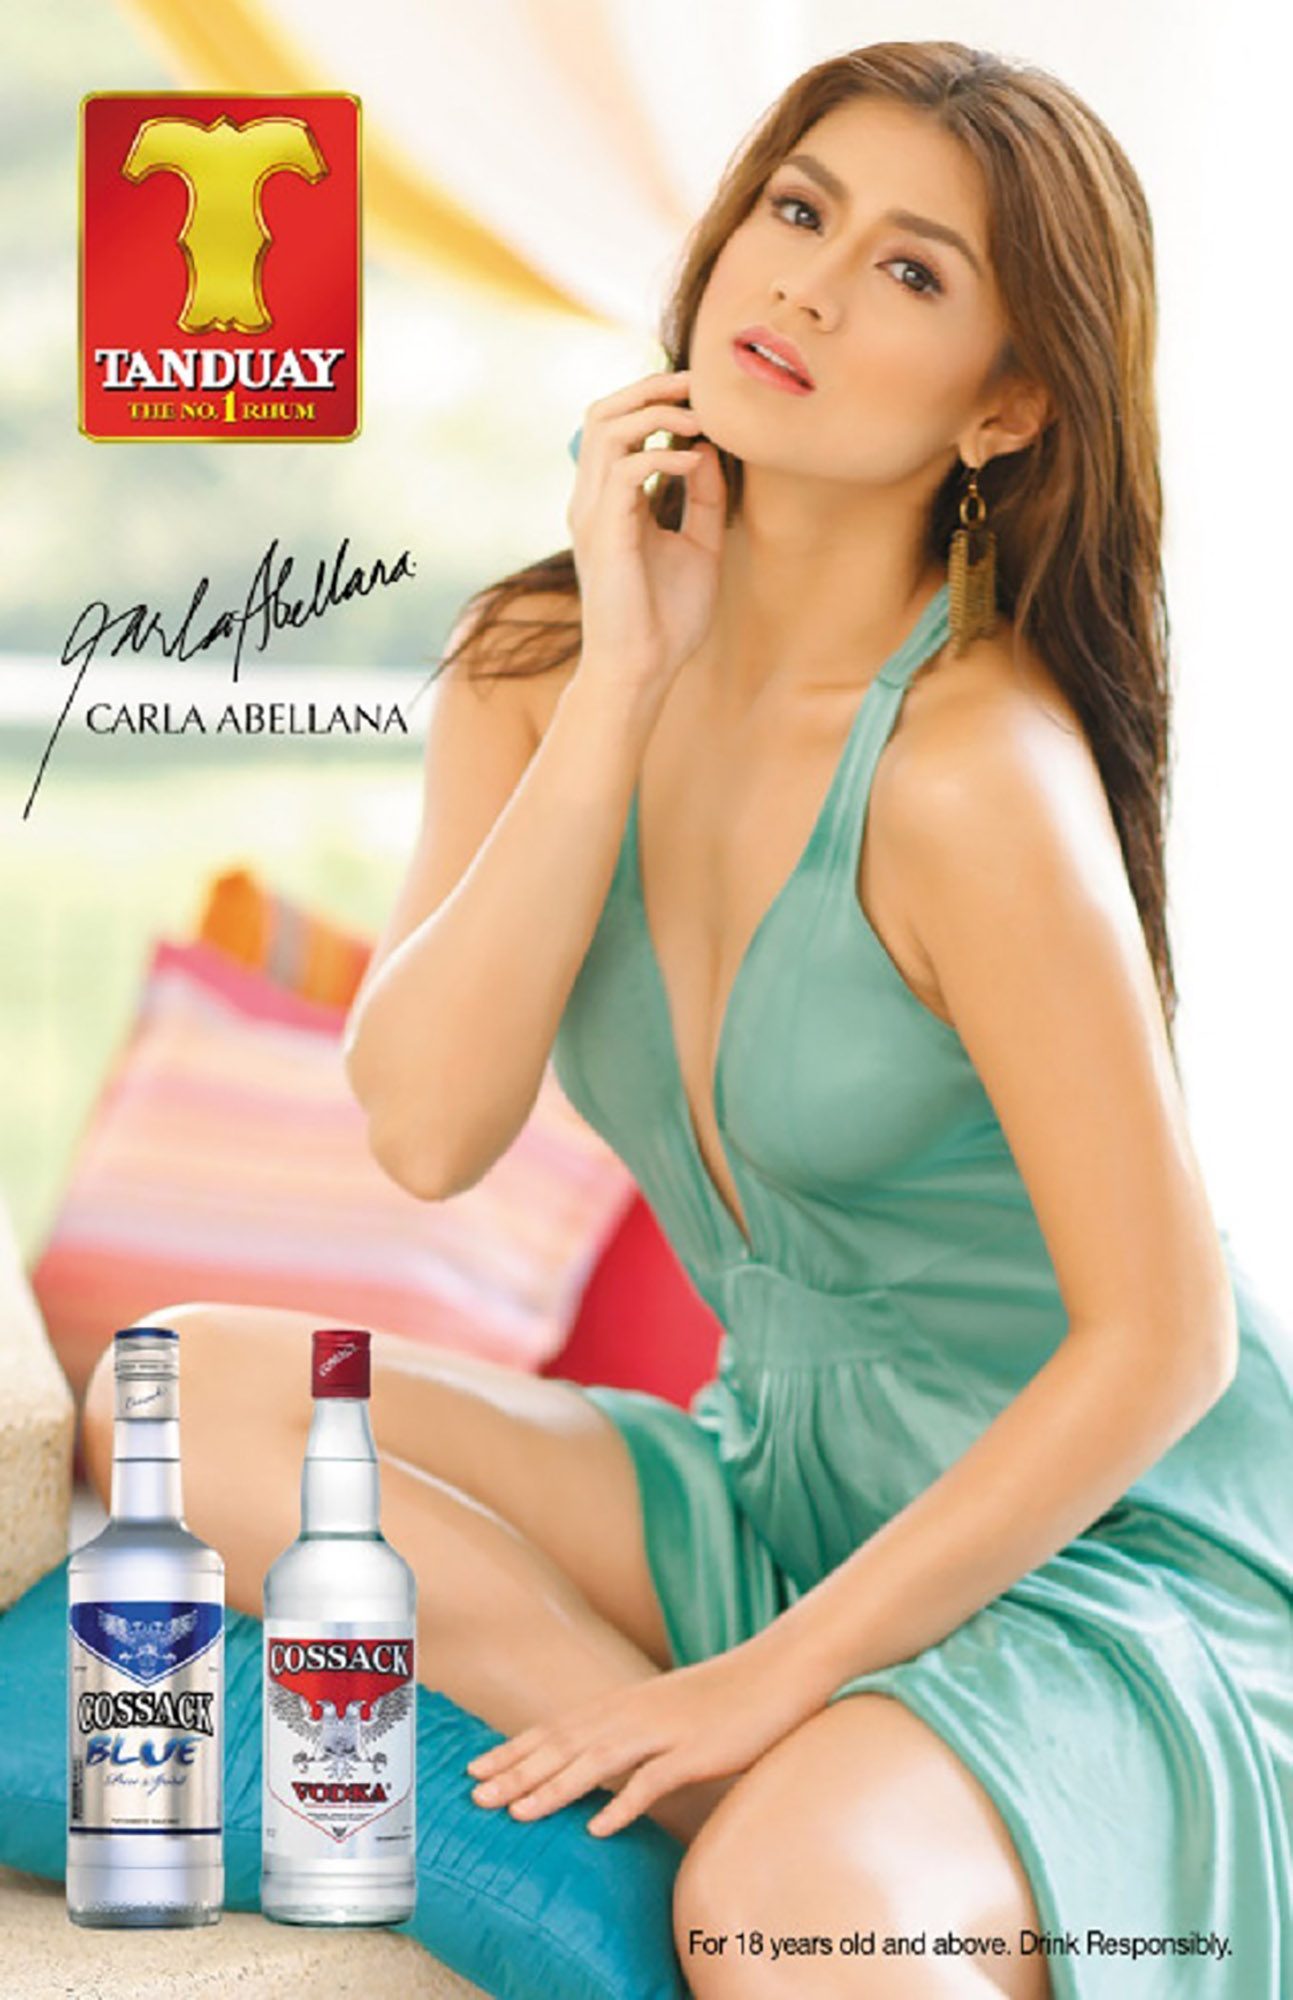 The Tanduay Calendar Girls From 2010-2020 Ranked! | Ao: All Out